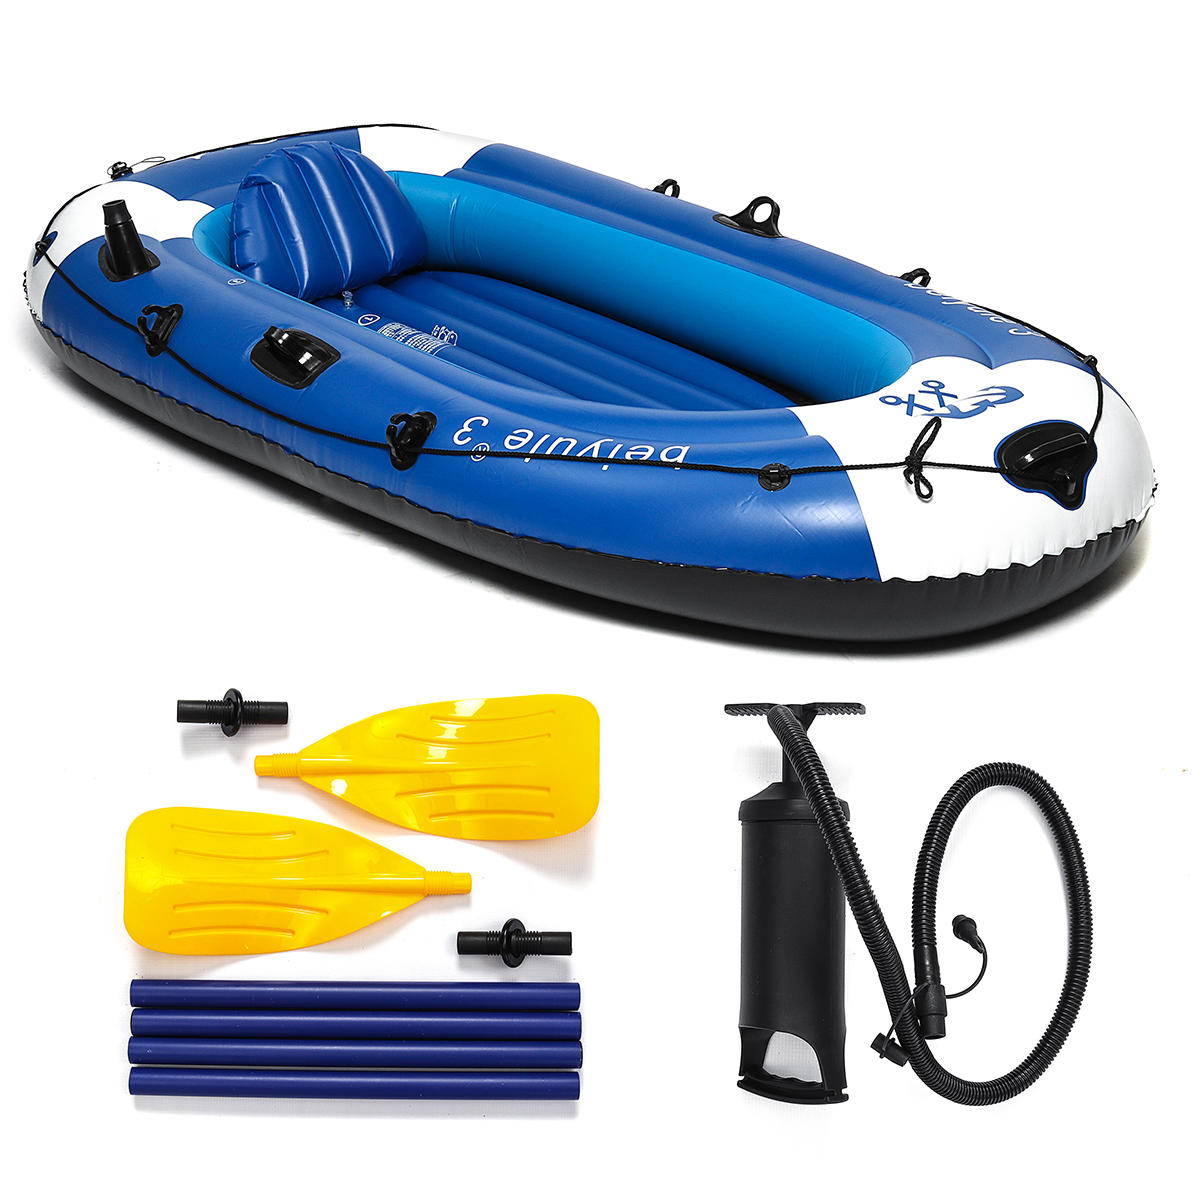 225x127cm 3 Person Inflatable Rowing Boat Bearing 210kg PVC Rubber Fishing with Paddles Pump